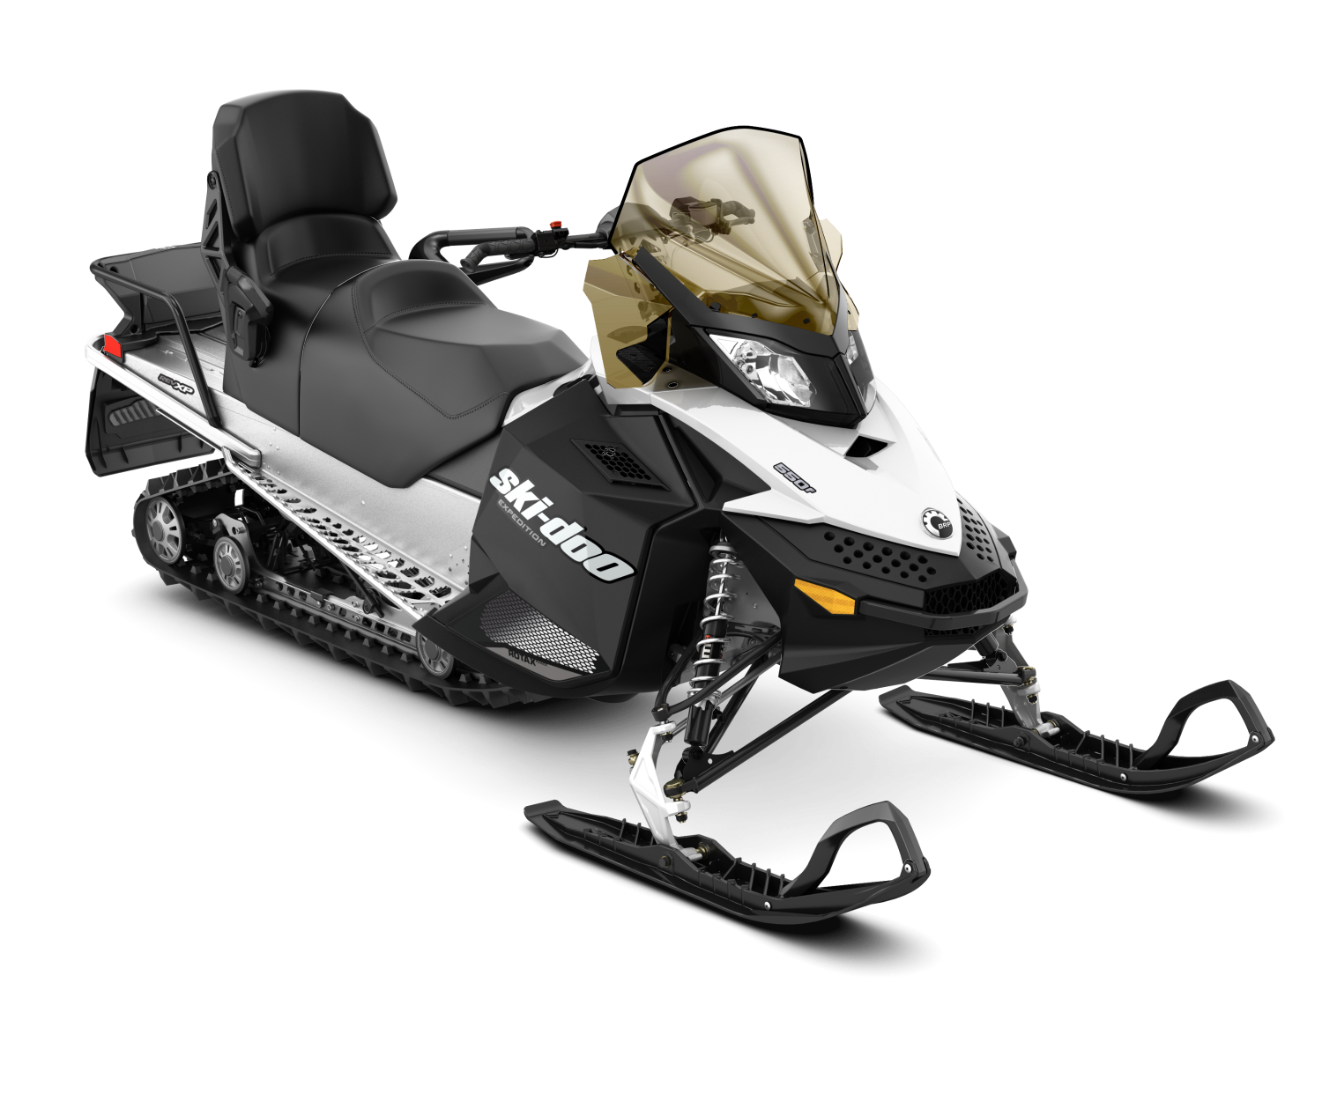 2018 Ski-Doo Expedition Sport 550F in Massapequa, New York